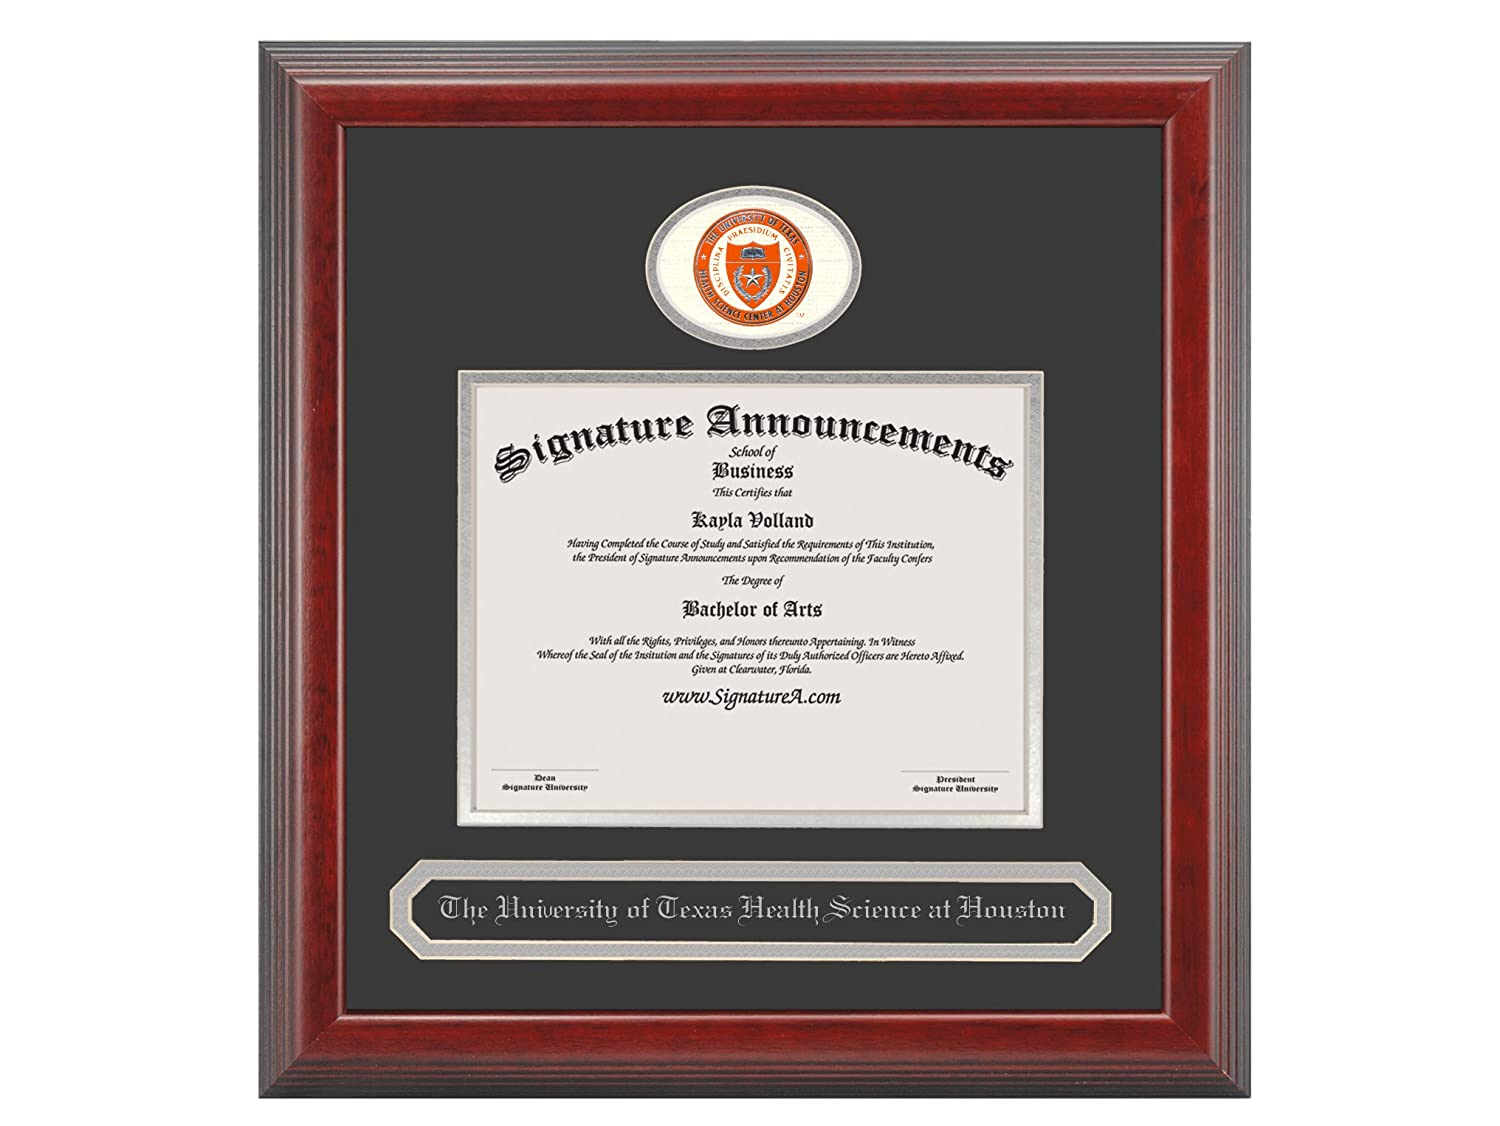 20 x 20 Cherry Signature Announcements University-of-Texas-Health-Science-Center-at-Houston Undergraduate Sculpted Foil Seal /& Name Graduation Diploma Frame